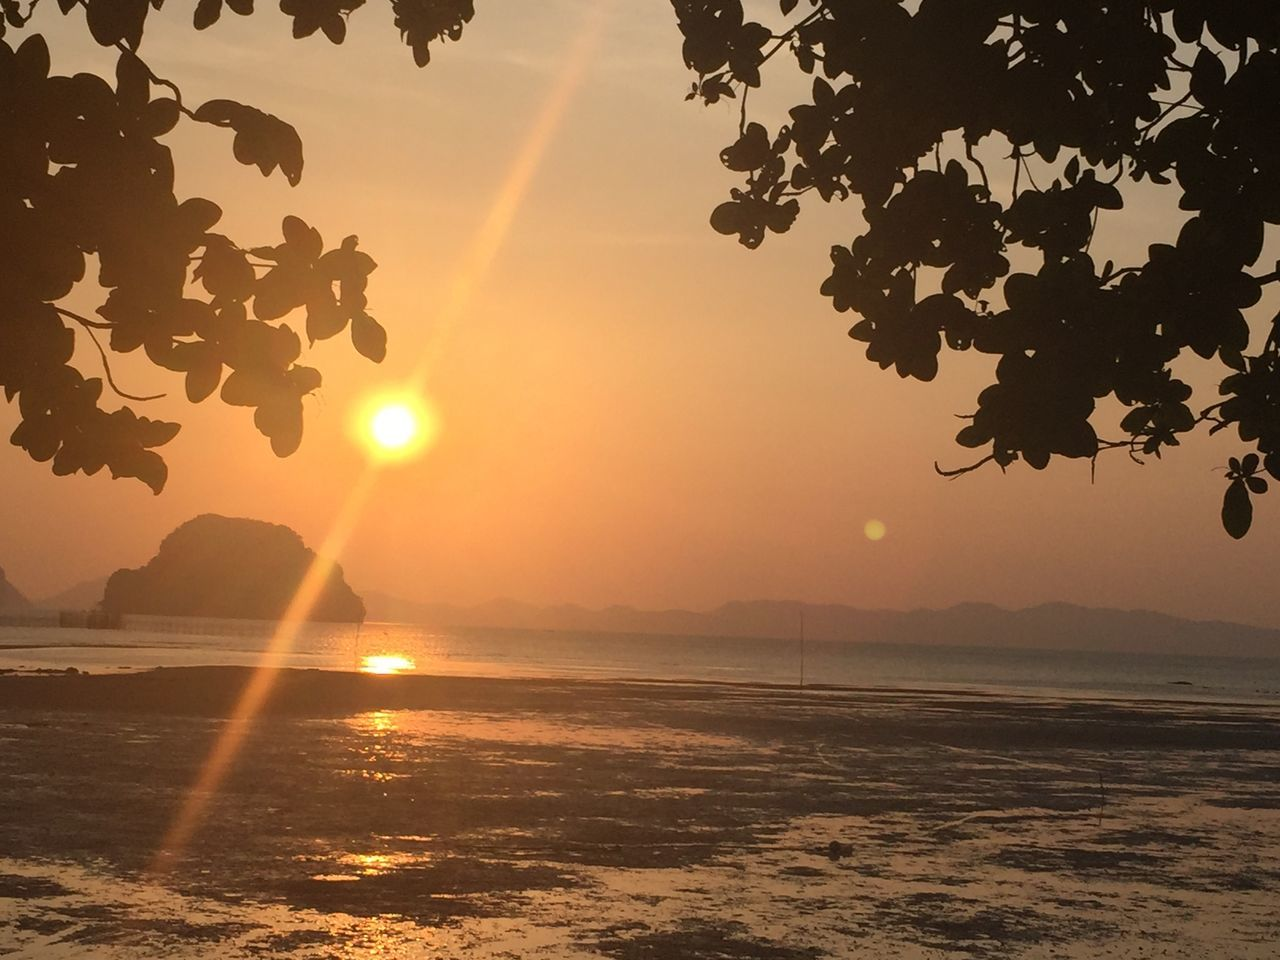 sunset reflection by the sea in Krabi city of Thailand Beauty In Nature Destination Destiny Hope Hopes And Dreams Horizon Over Water Inspiration Inspired Inspired By Nature Light And Shadow Nature No People Outdoors Reflection Restart Silhouette Special Startup Sunlight Sunset Tranquil Scene Tranquility